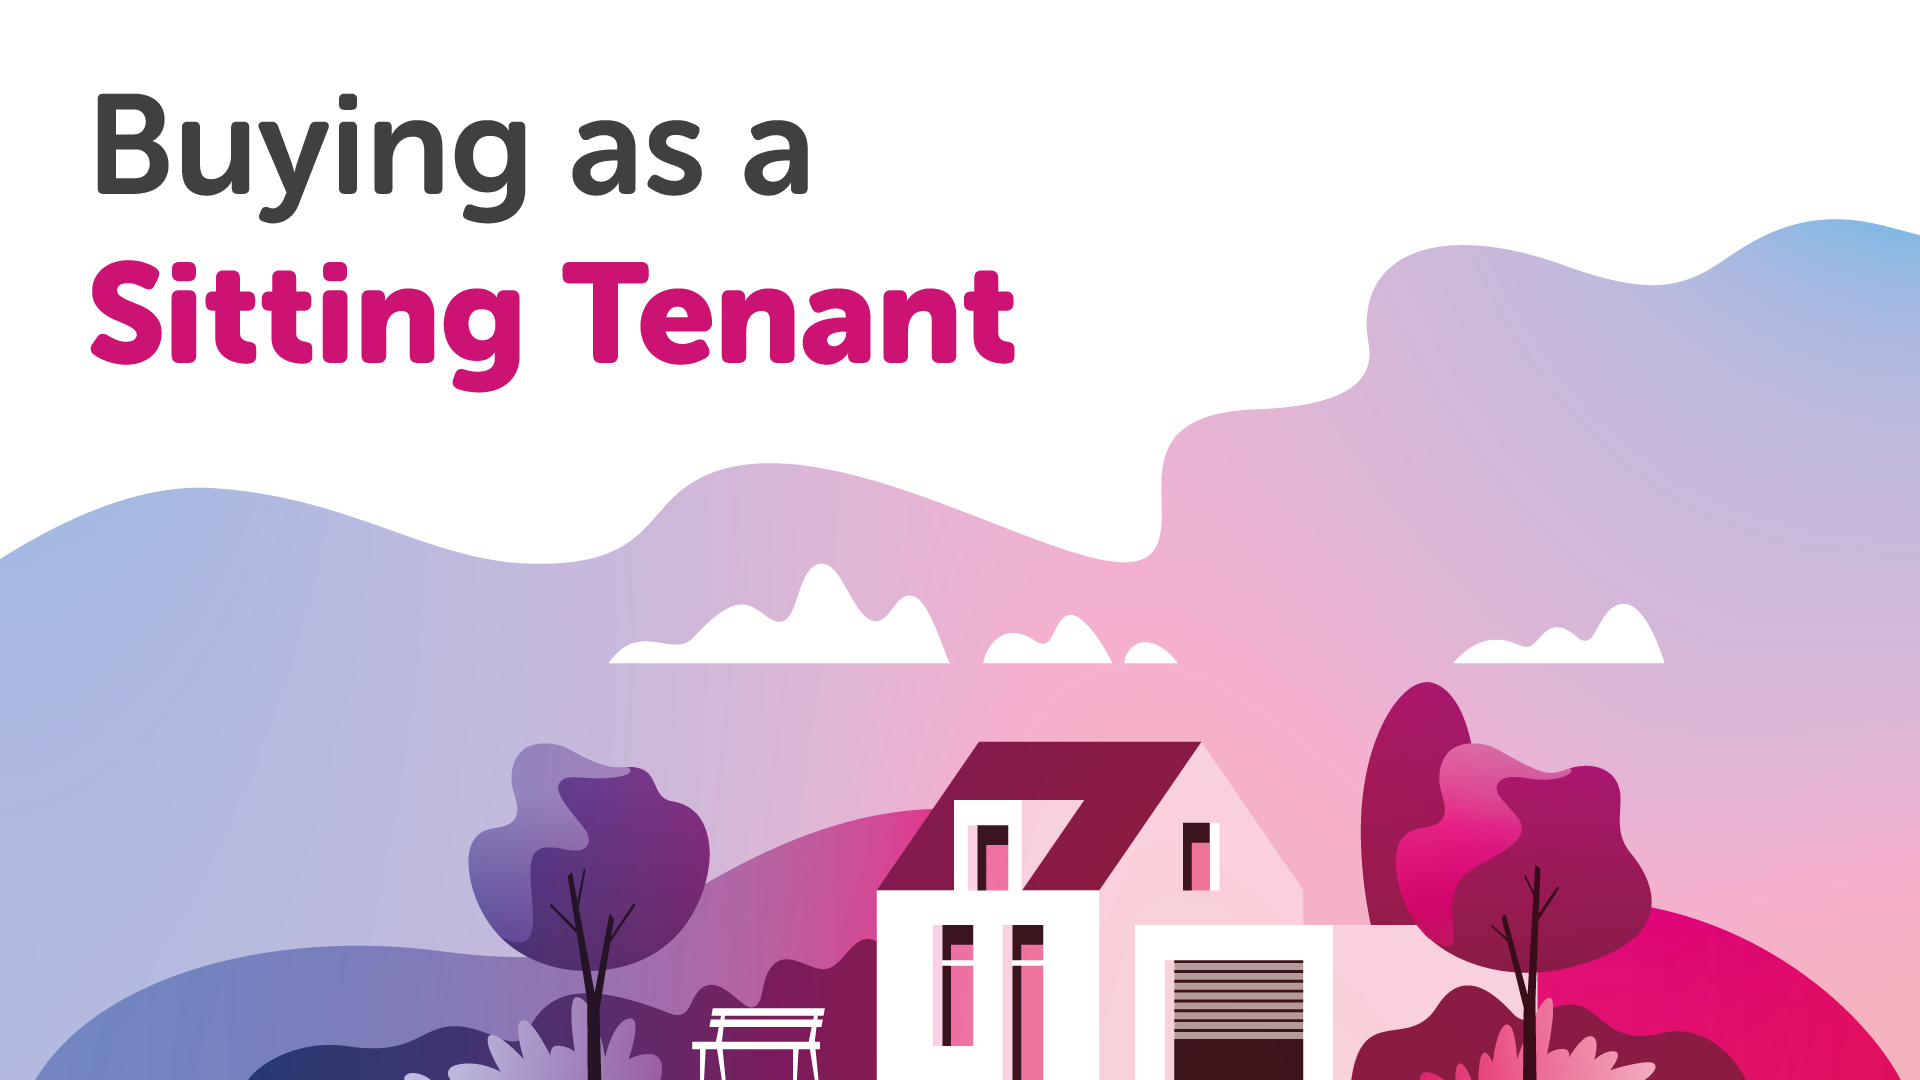 Buying as a Sitting Tenant Explained